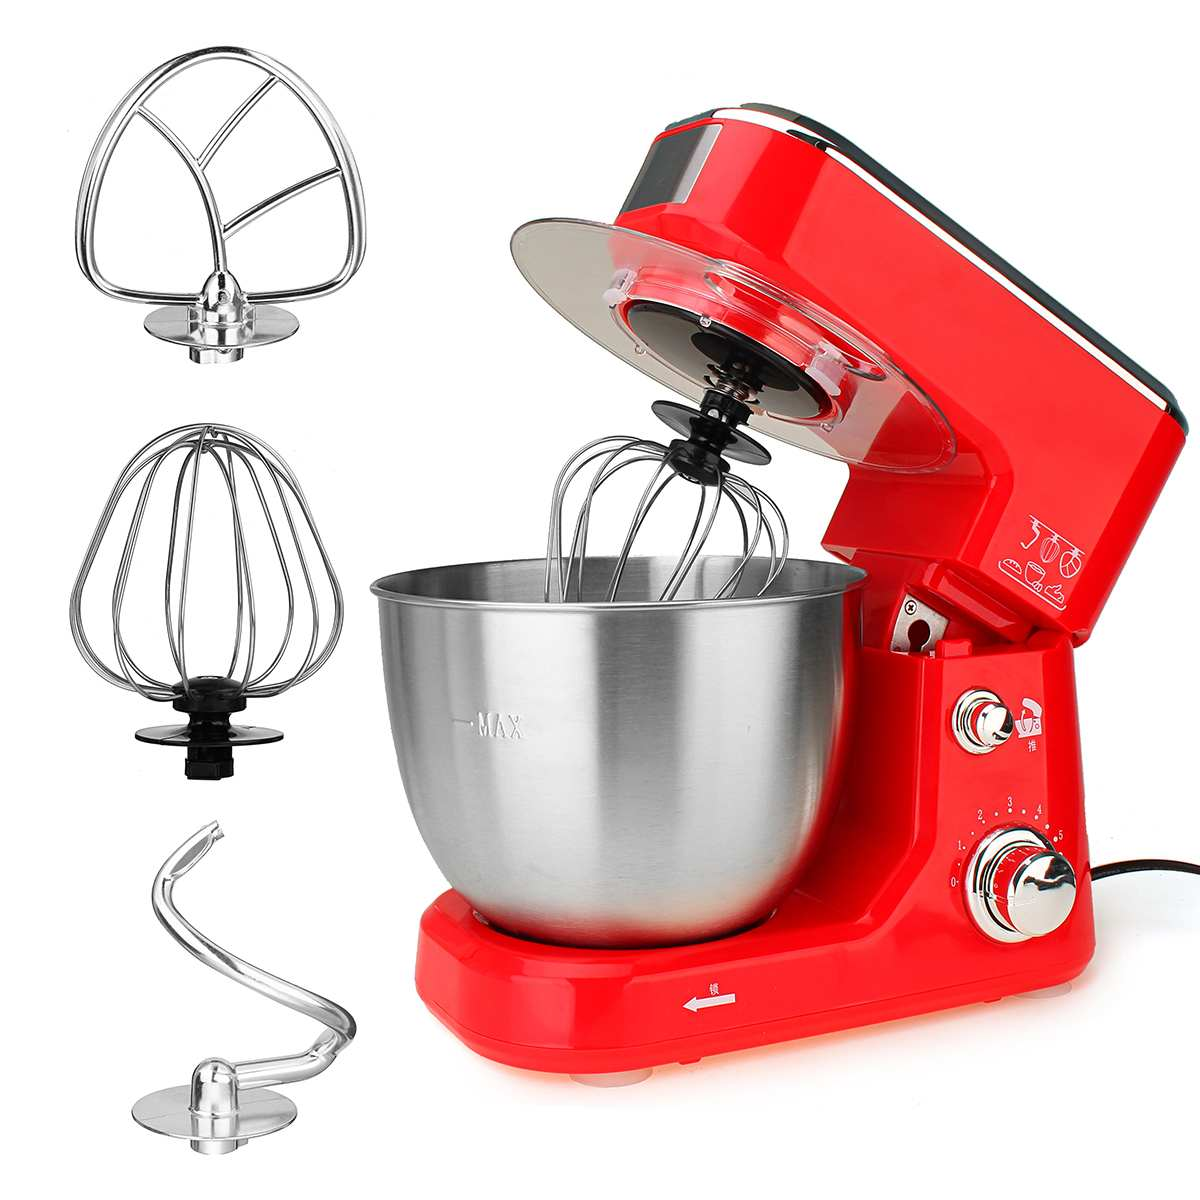 Tabletop 4L Bowl-Lift Mixer Kitchen Food Milkshake/Cake Kneading Machine Blenders Eggs Beater Home Smoothie Maker Tools